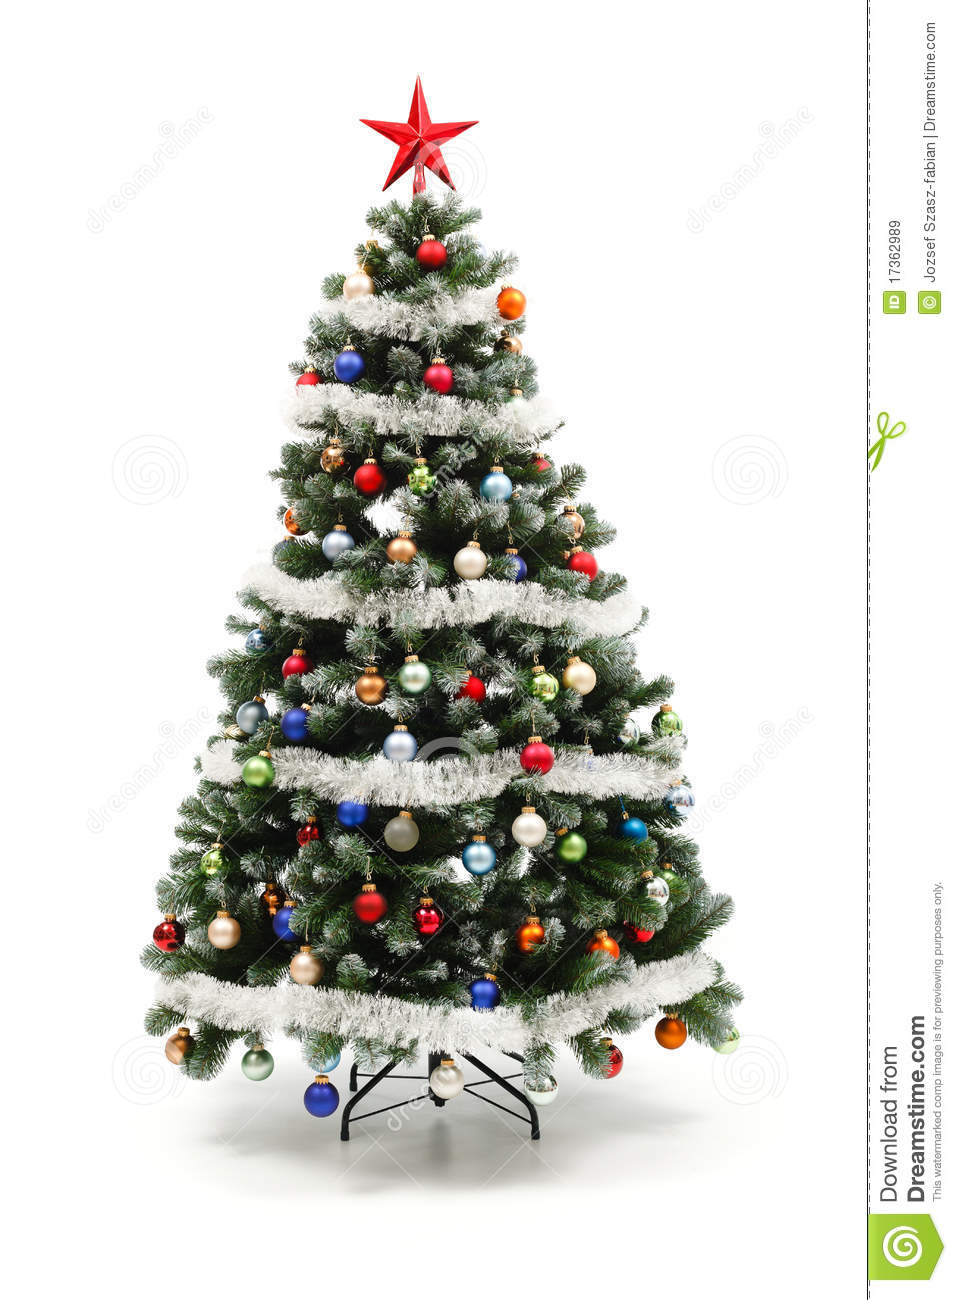 Colorful Decorated Artificial Christmas Tree Stock Image - Image of ...